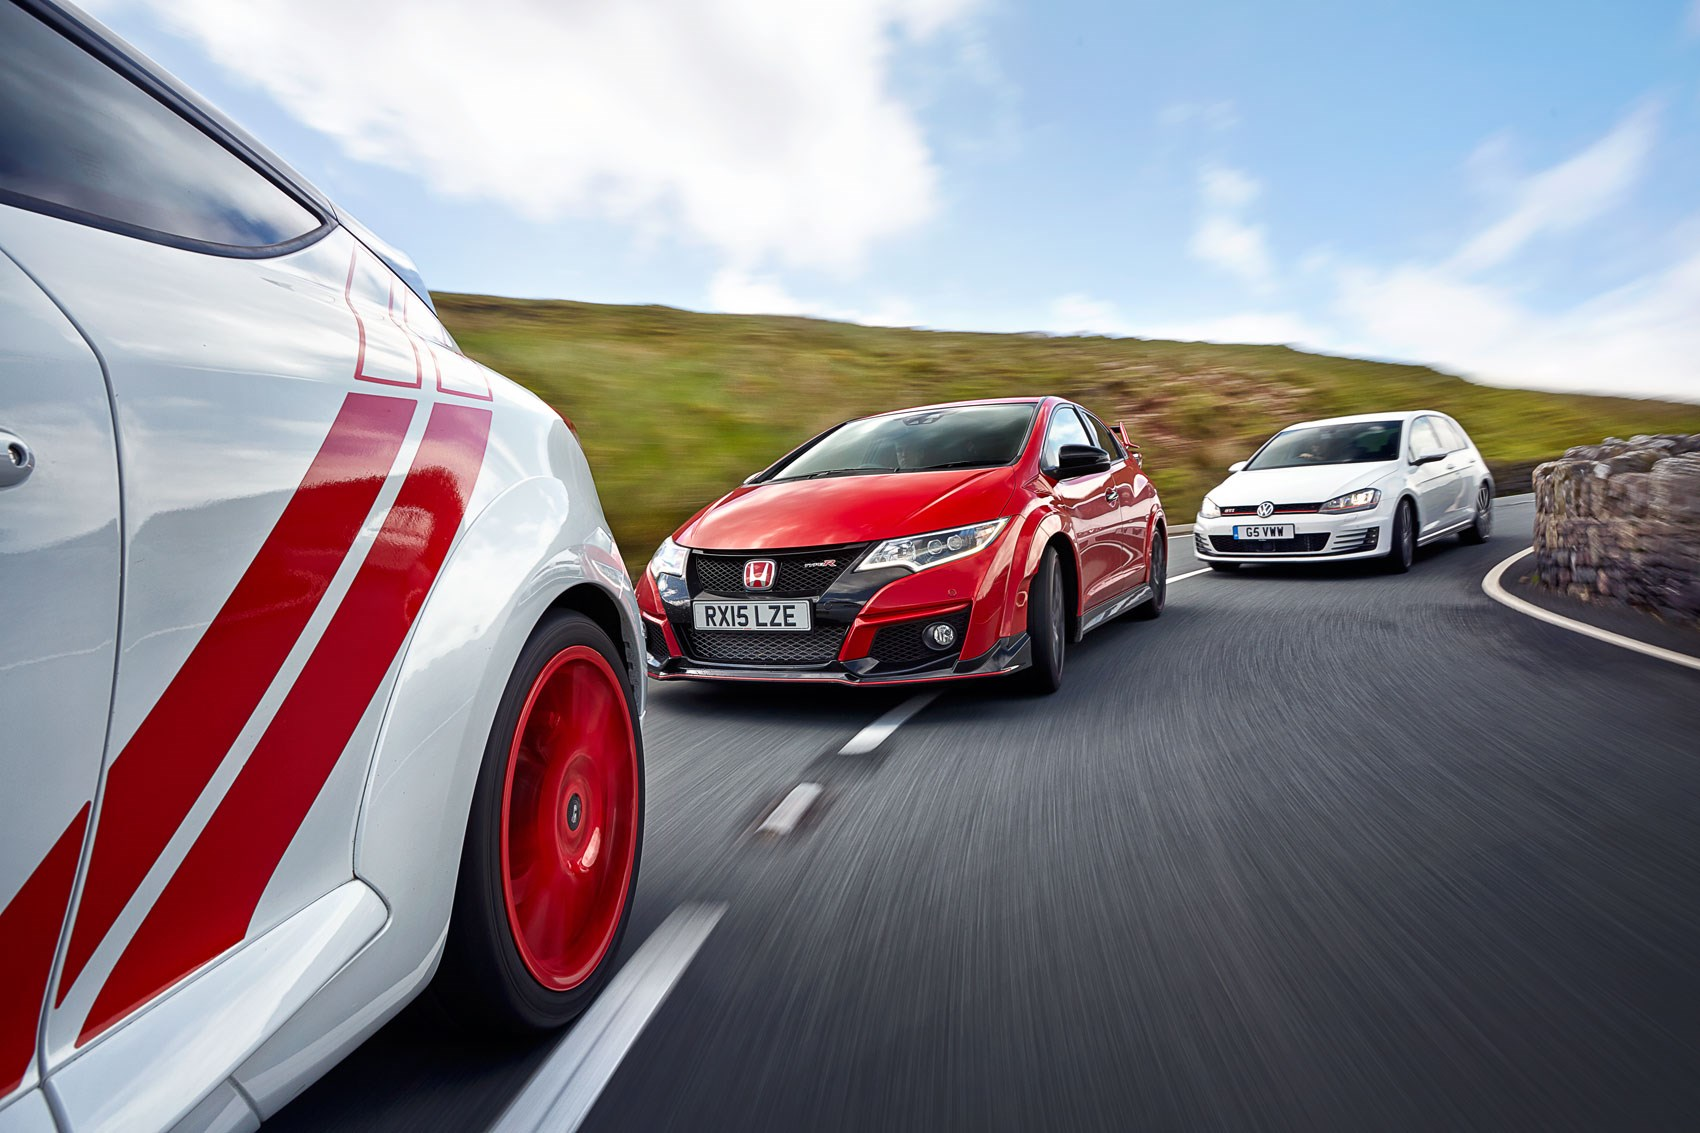 Genial A Civic Sandwich: Megane Trophy R Leads Honda, ...